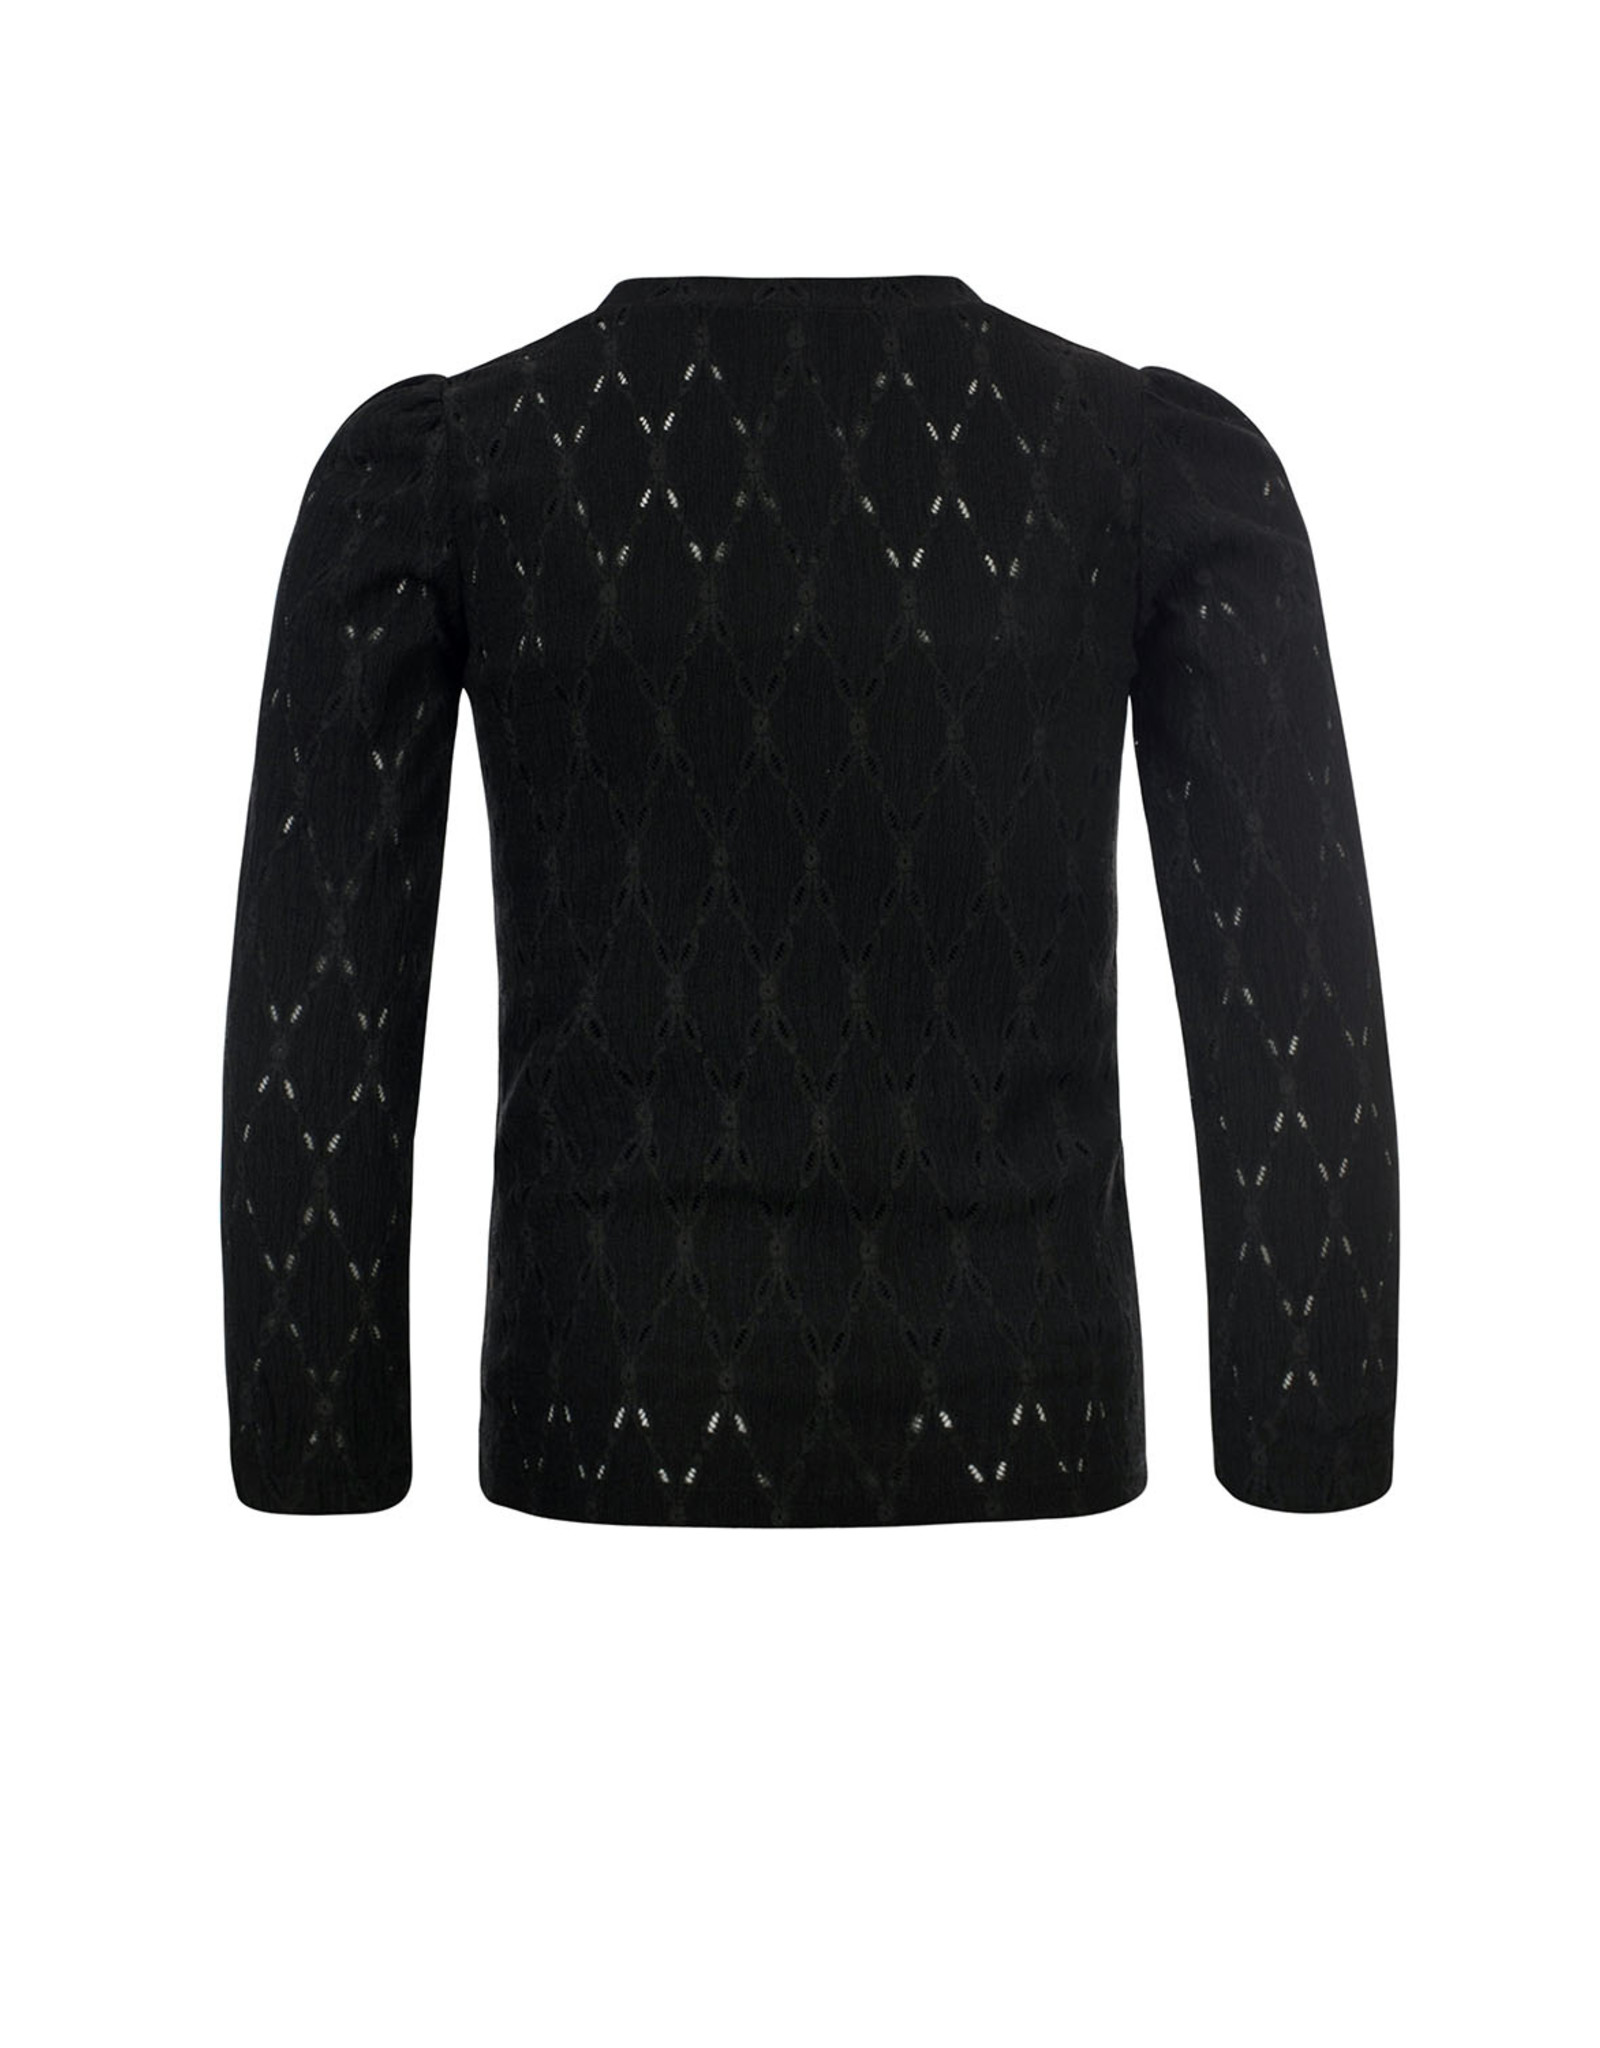 Looxs 10Sixteen crinkle lace top black